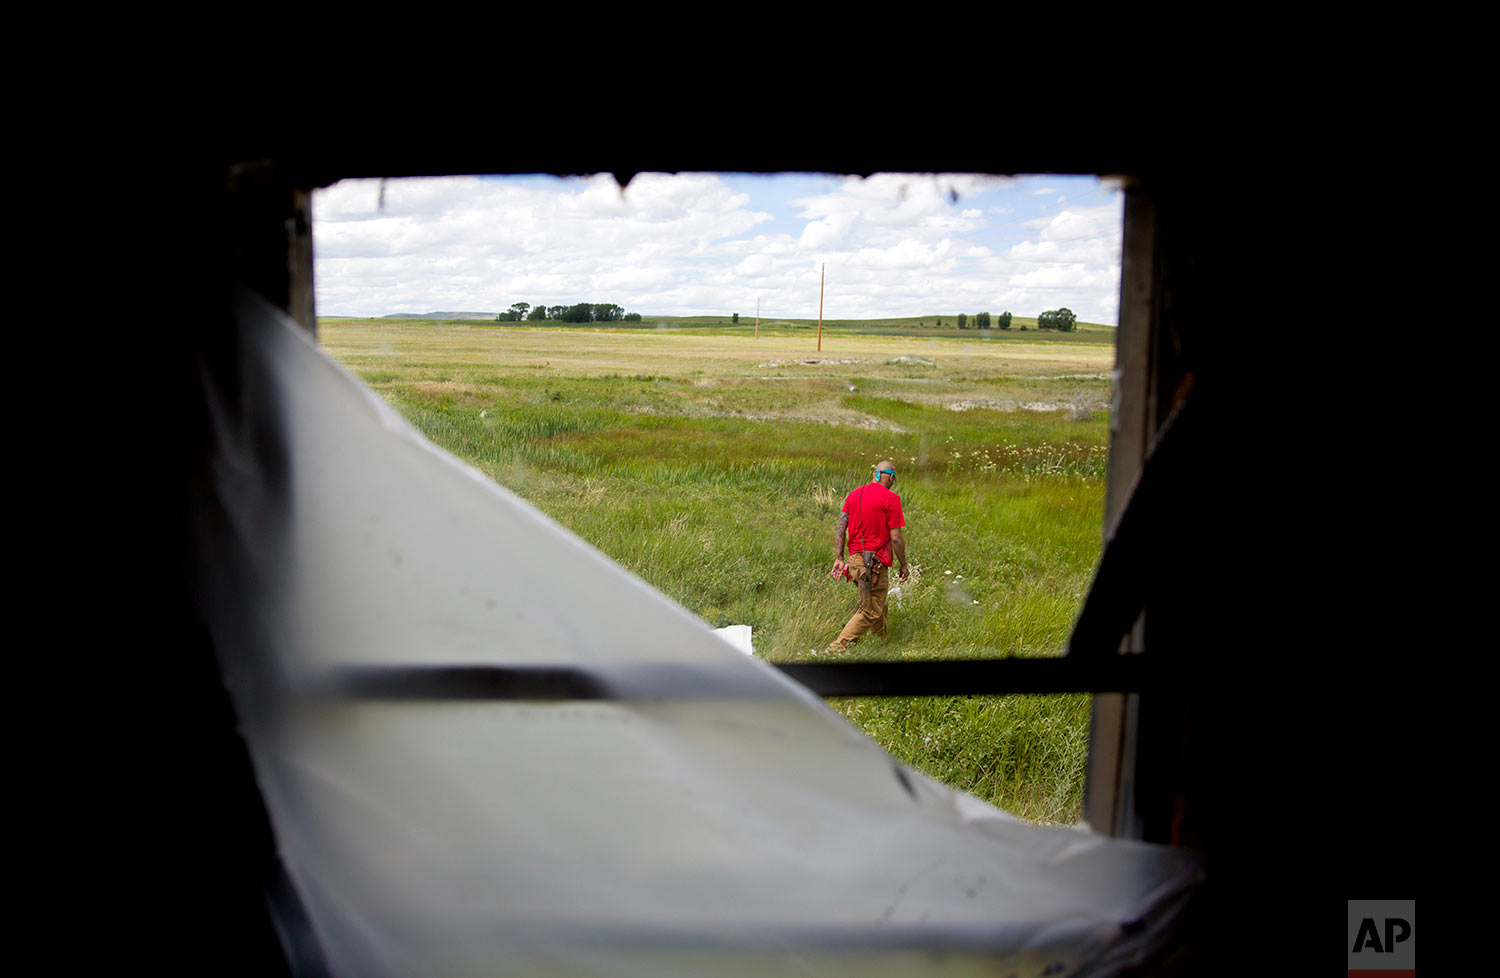 Randy Ortiz combs a field outside a trailer during a search for Ashley HeavyRunner Loring in Valier, Mont.,July 11, 2018.One of Ashley's cousins lived at the trailer, and there are reports it's among the last places she was seen. (AP Photo/David Goldman)